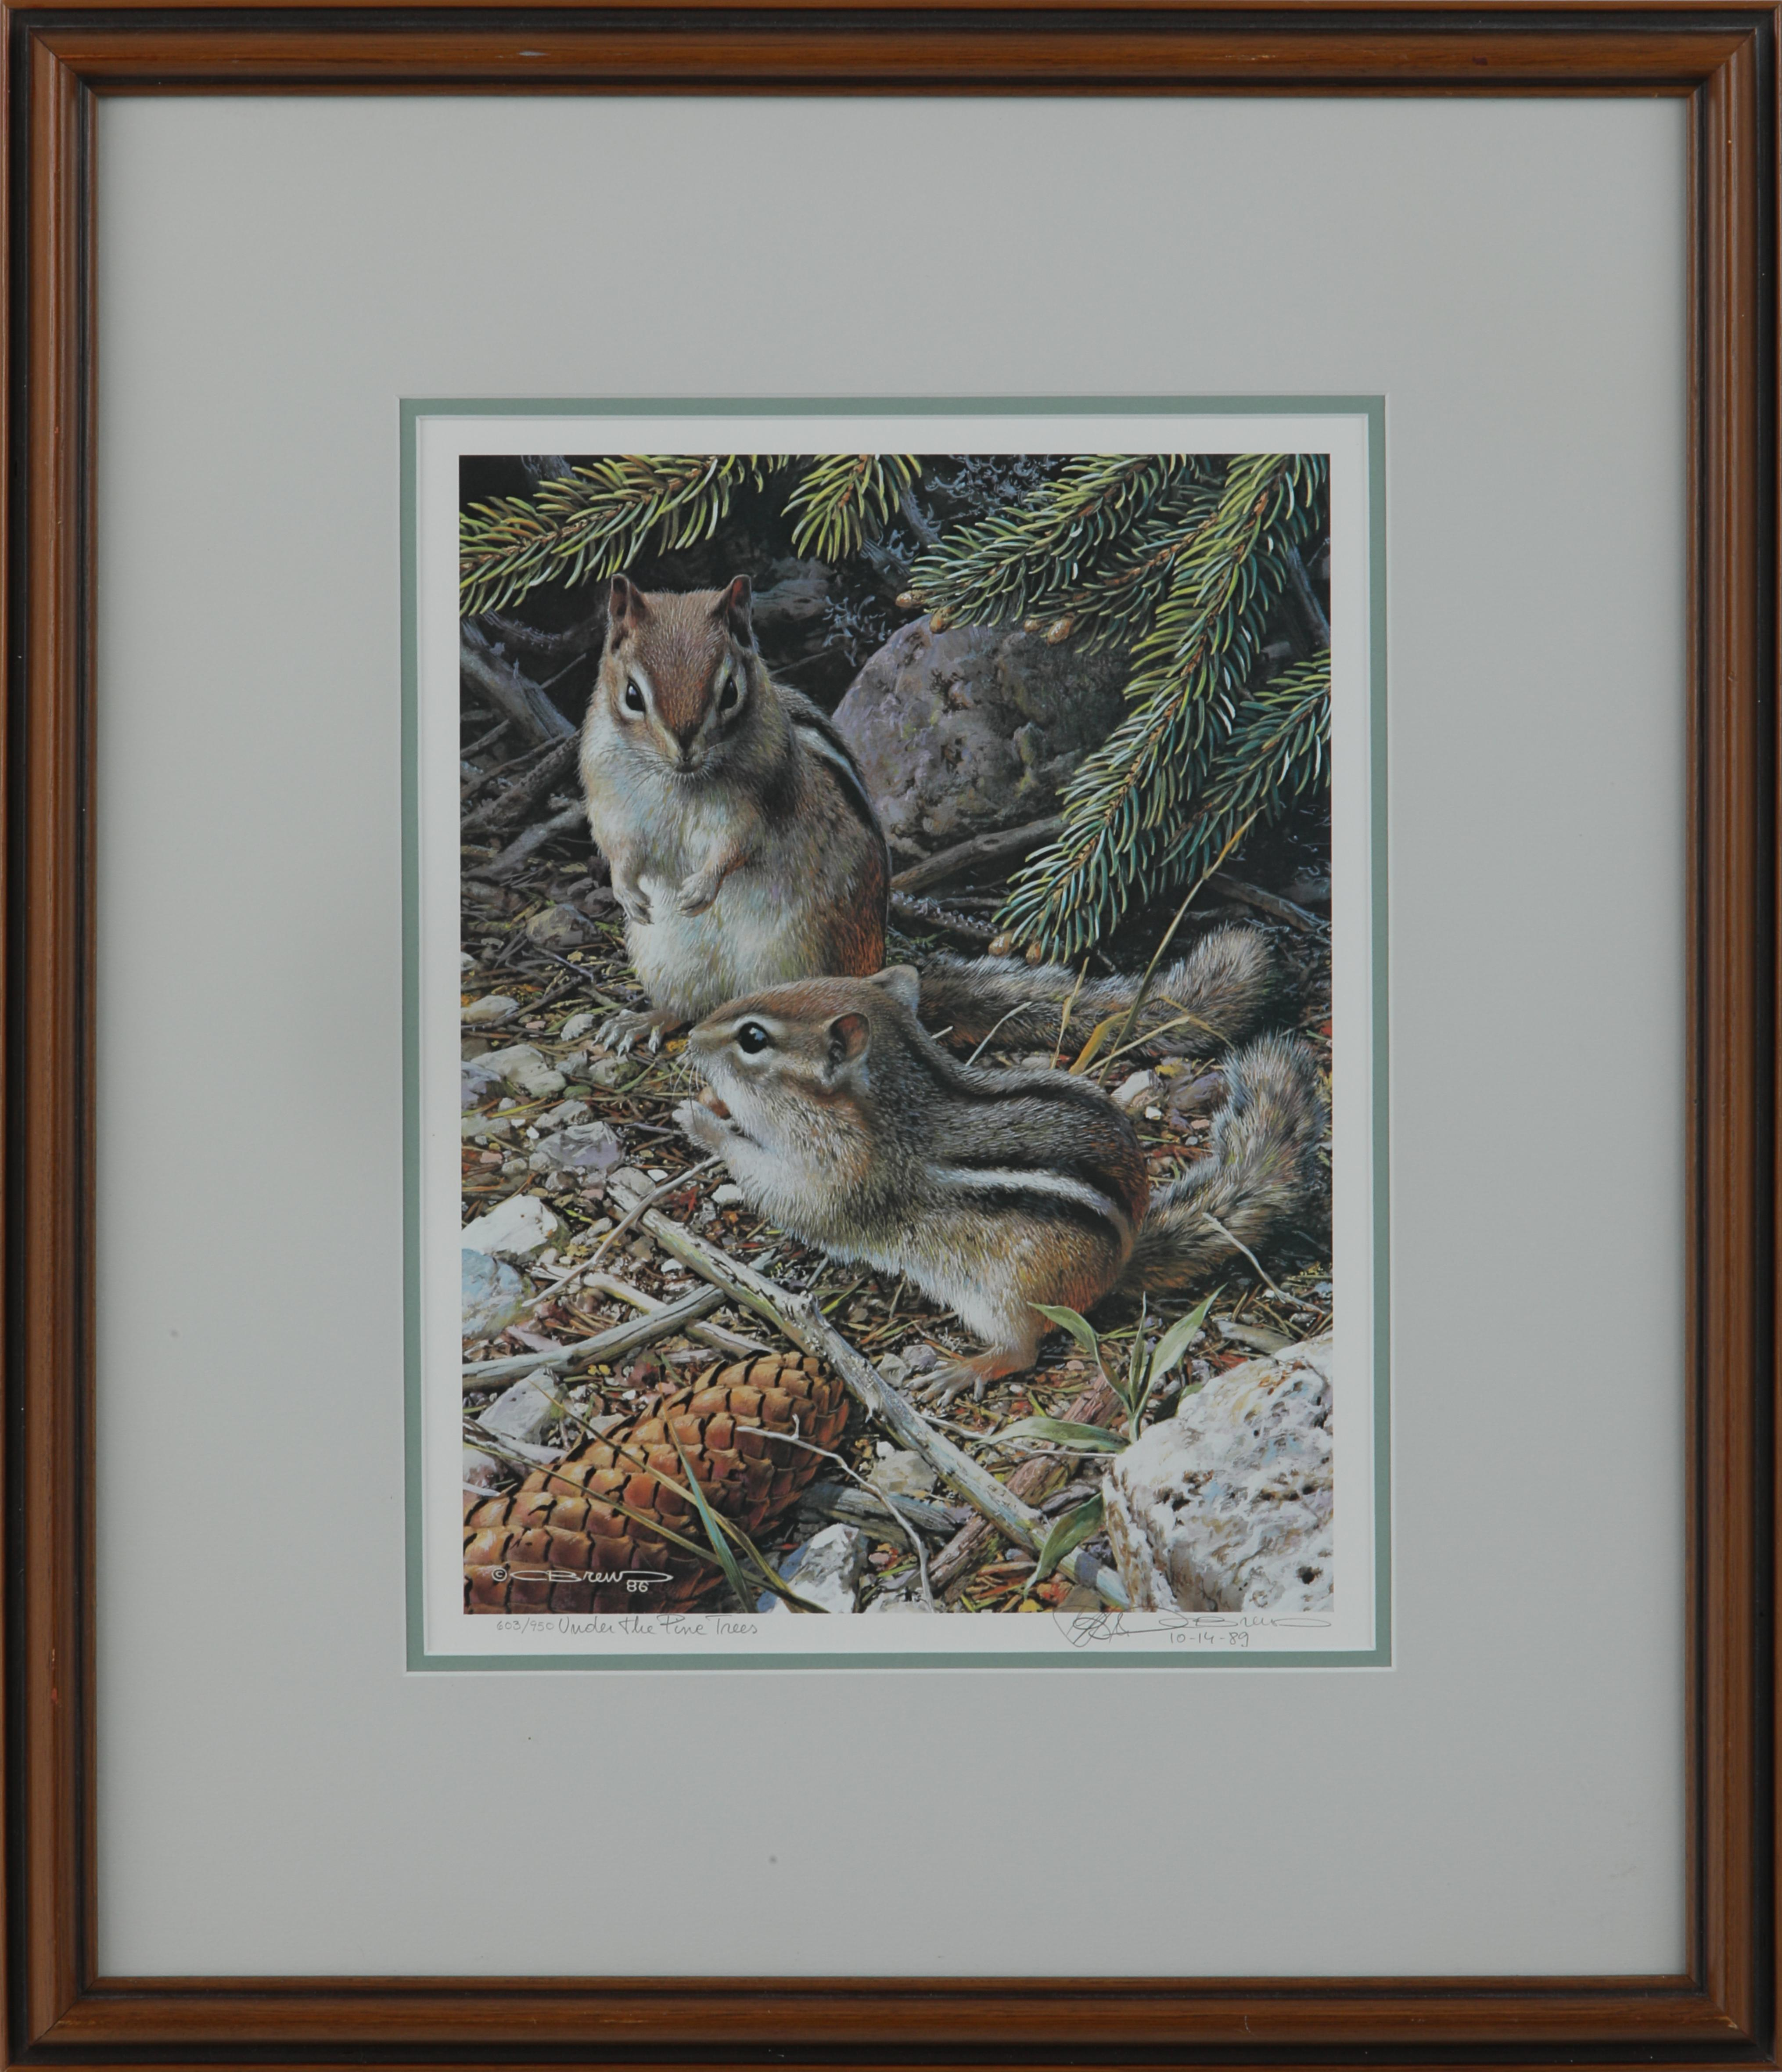 """Carl Brenders' """"Under The Pines Trees"""" Limited Edition Print"""